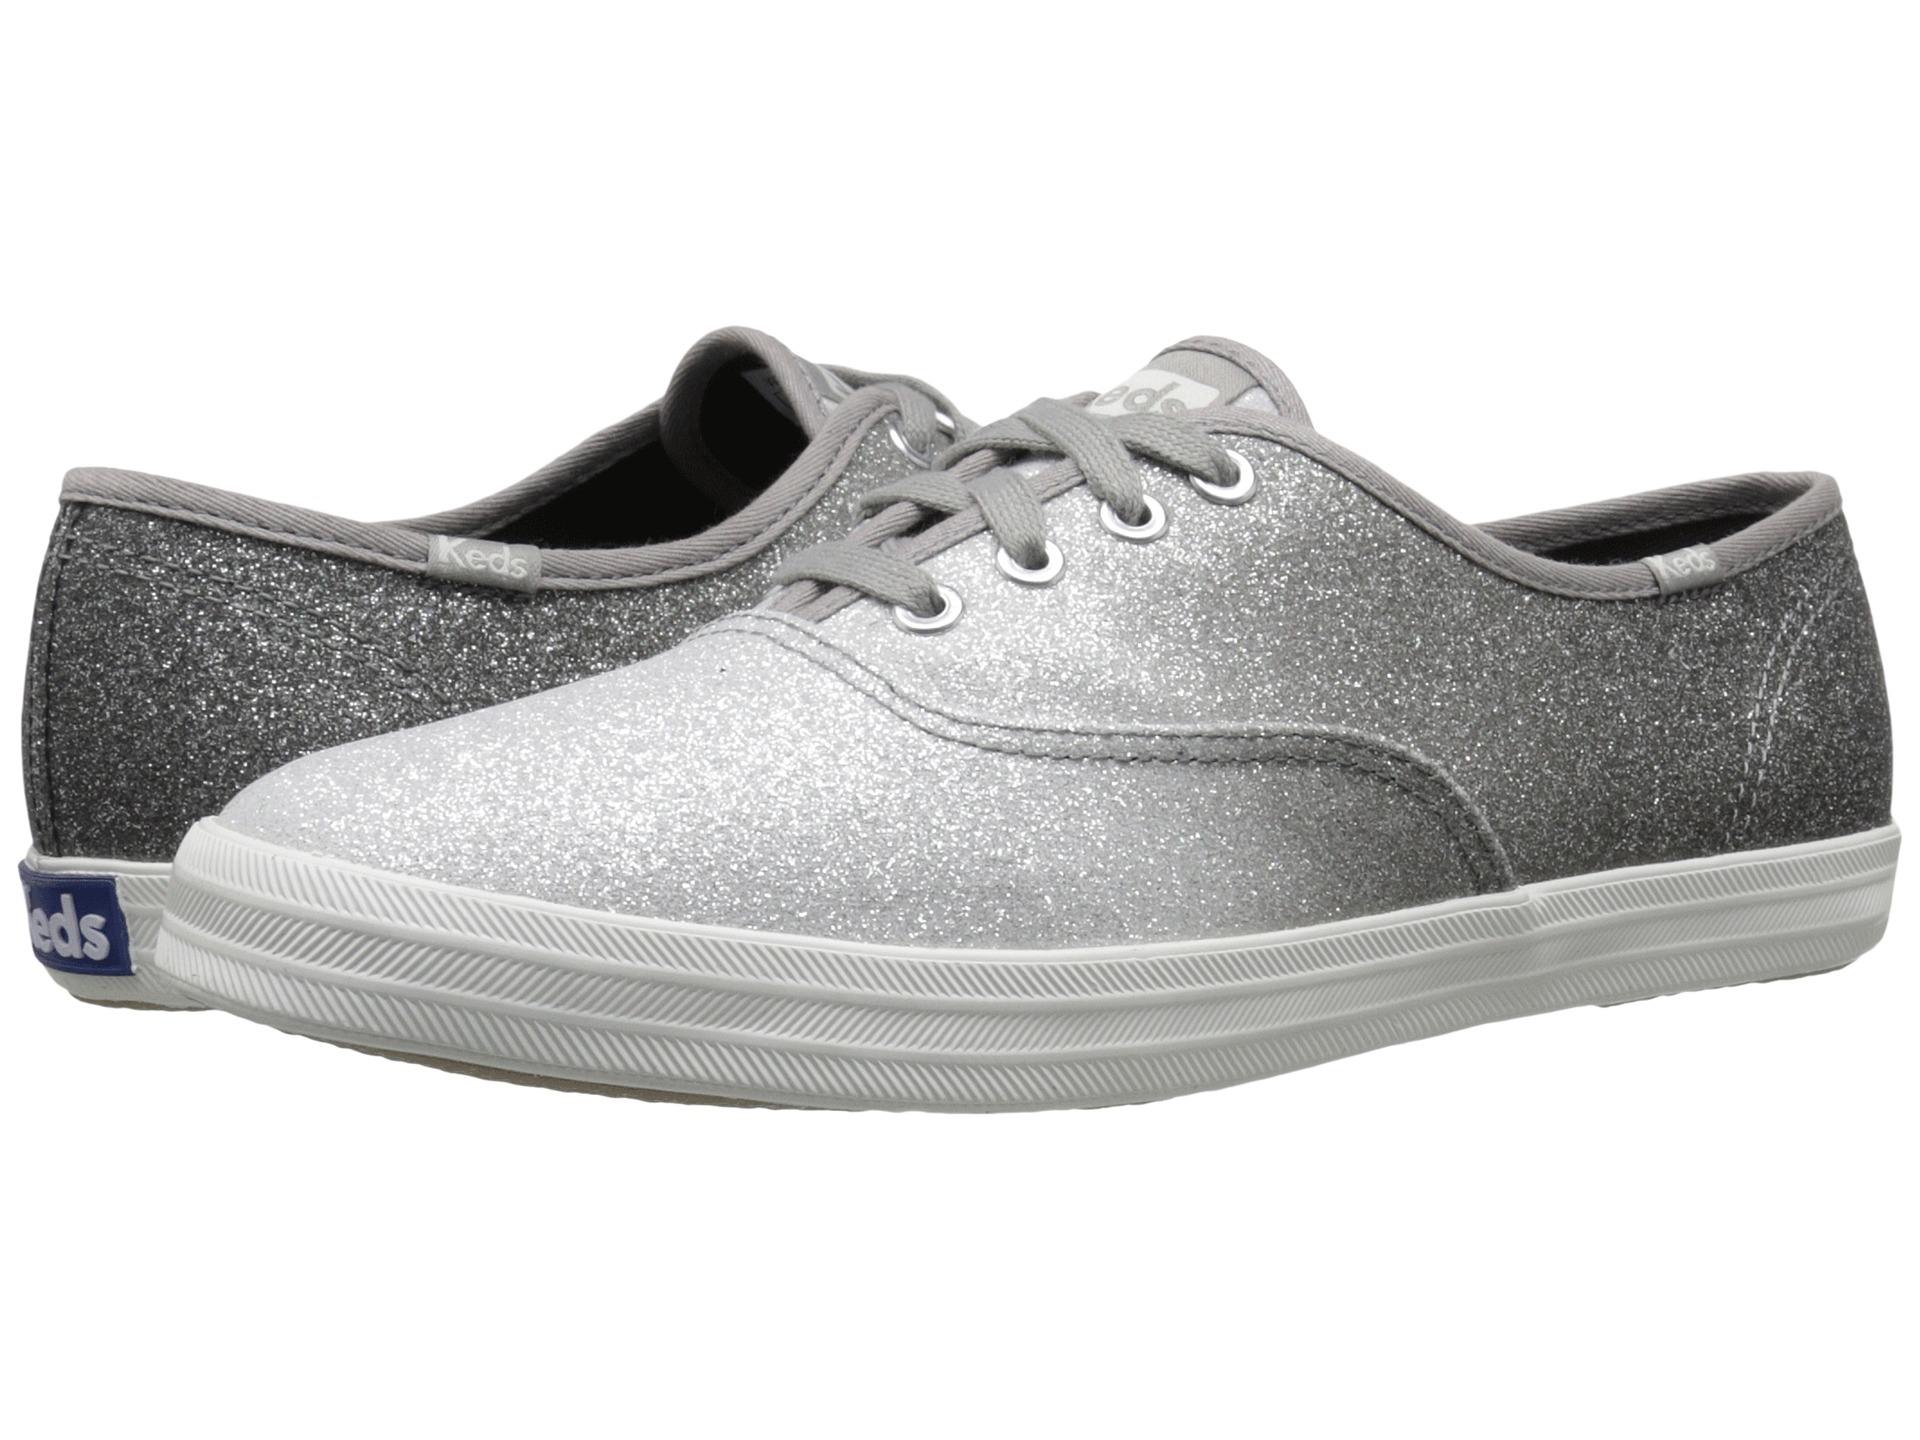 b2a30c014a9 Lyst - Keds Champion Ombre Glitter in Gray